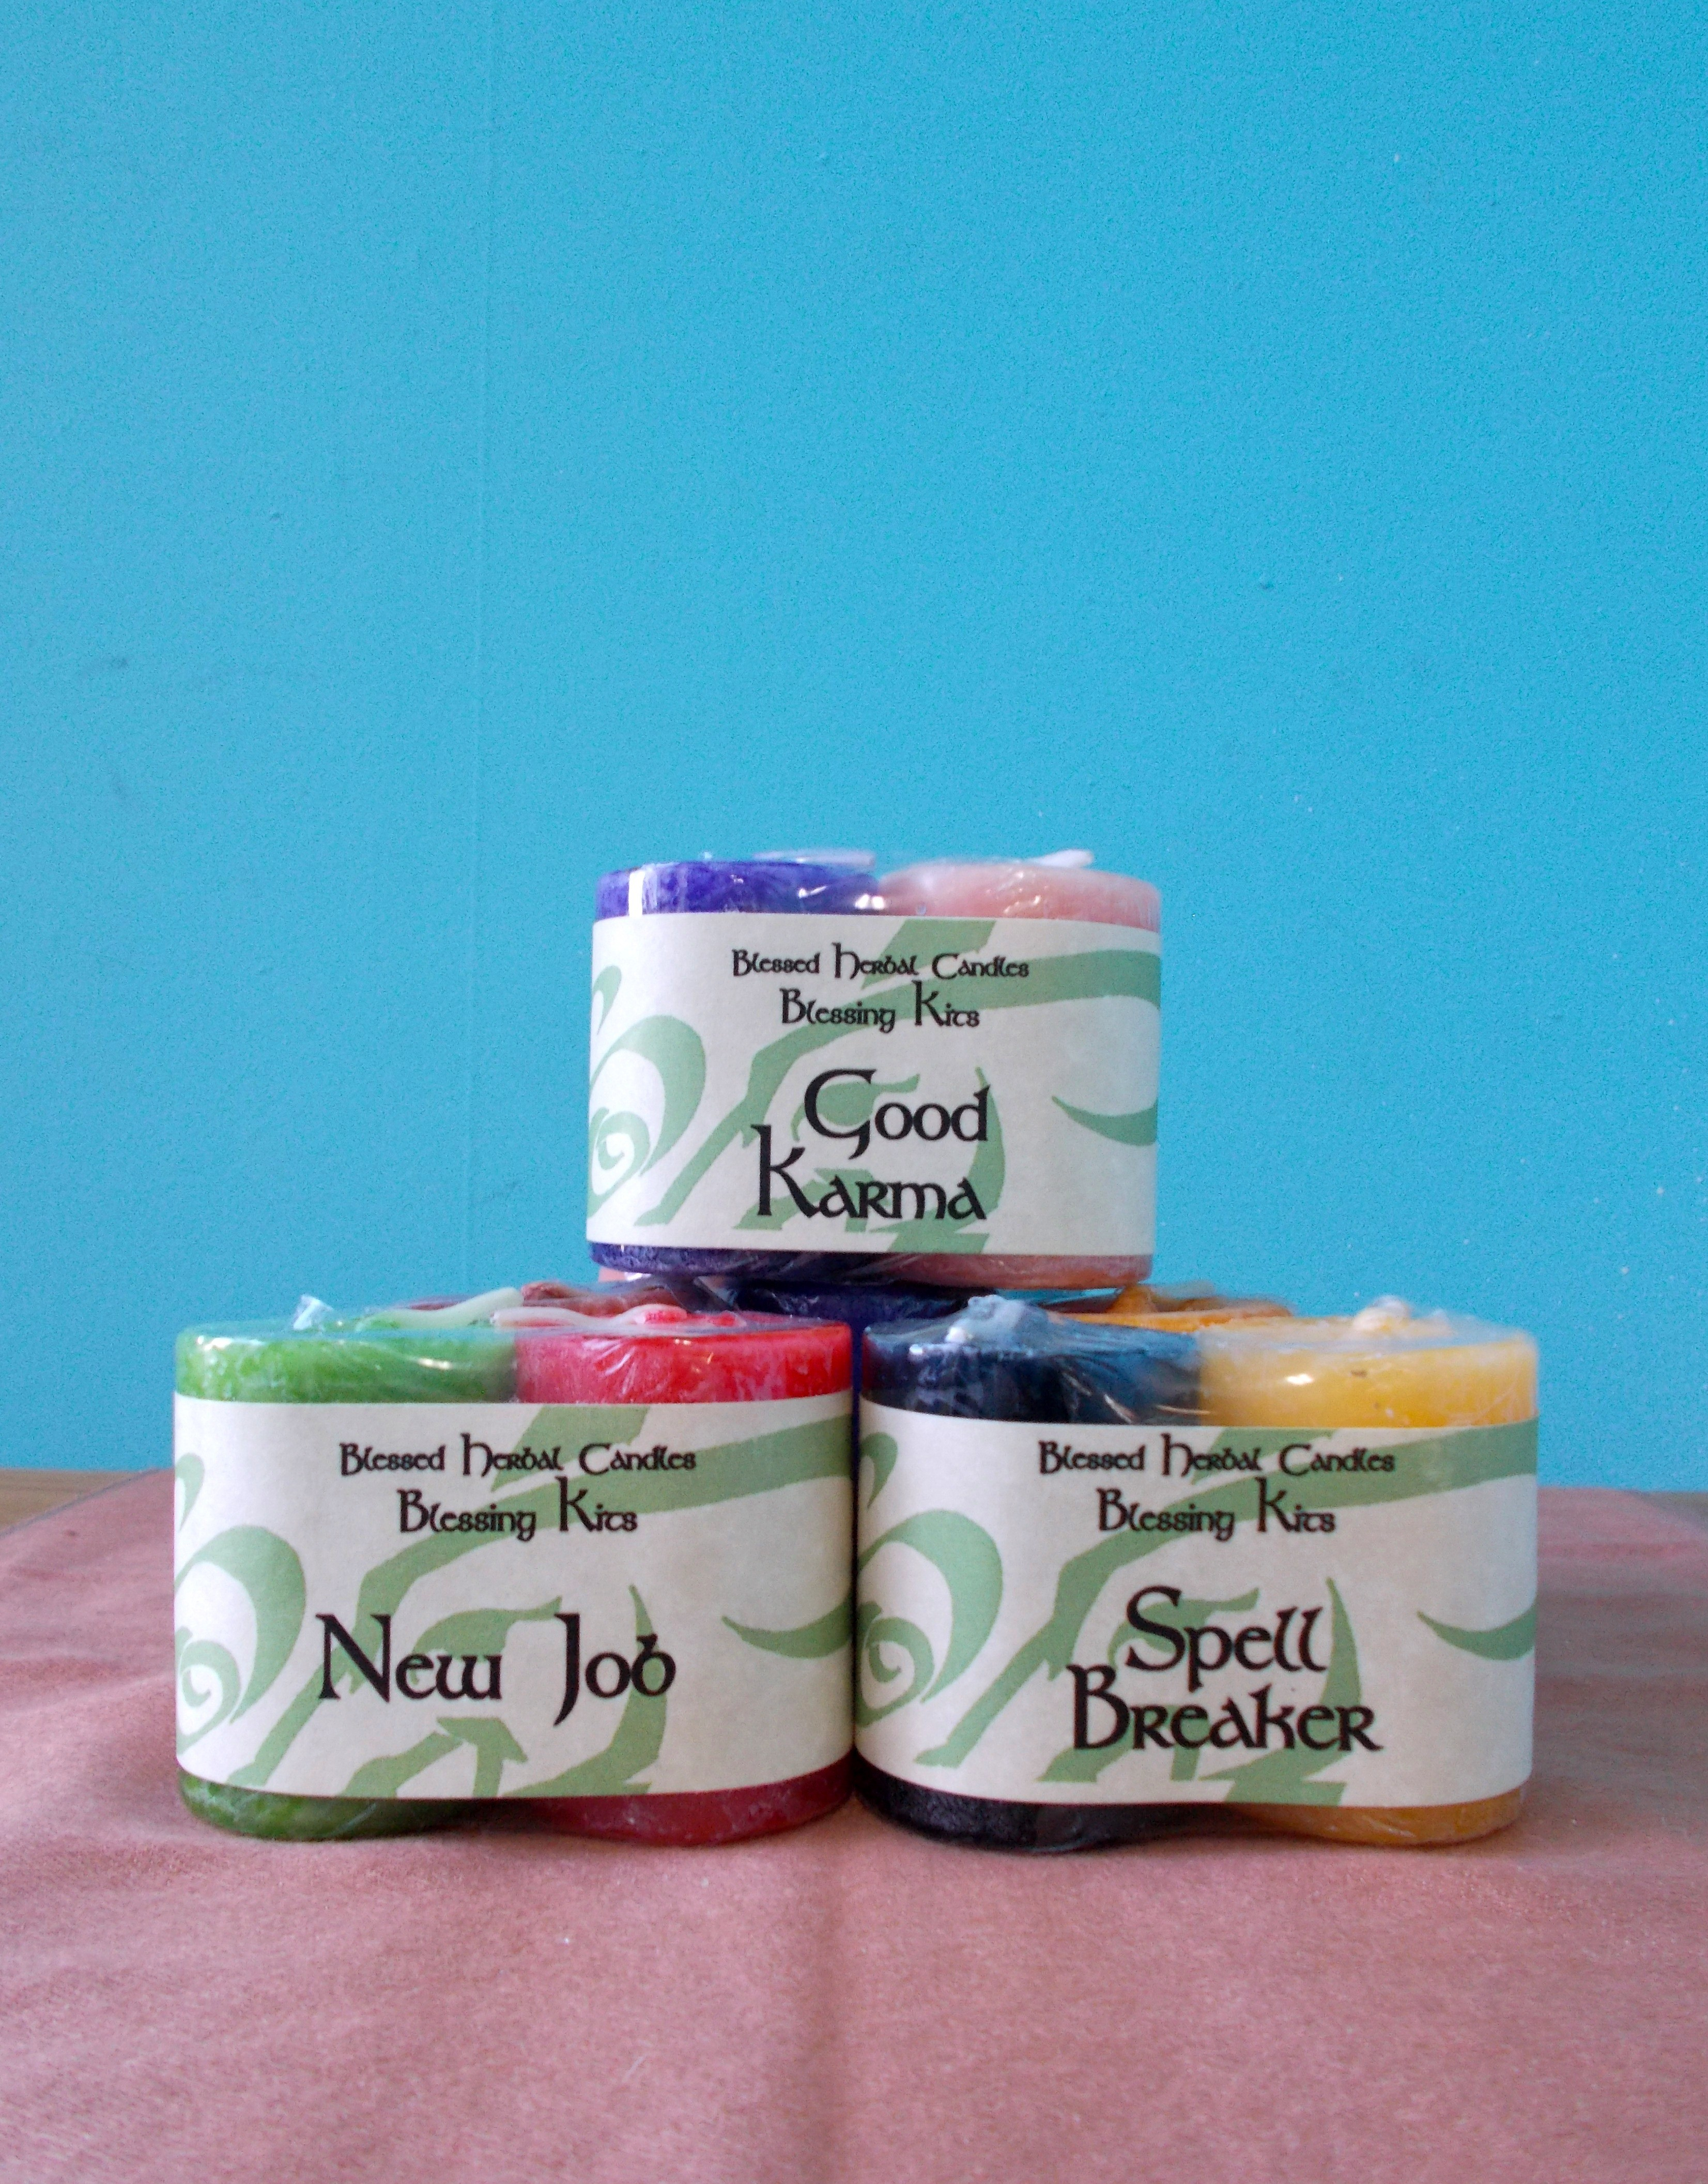 Blessed Herbal Candle Blessing Kits - Dreams Come True